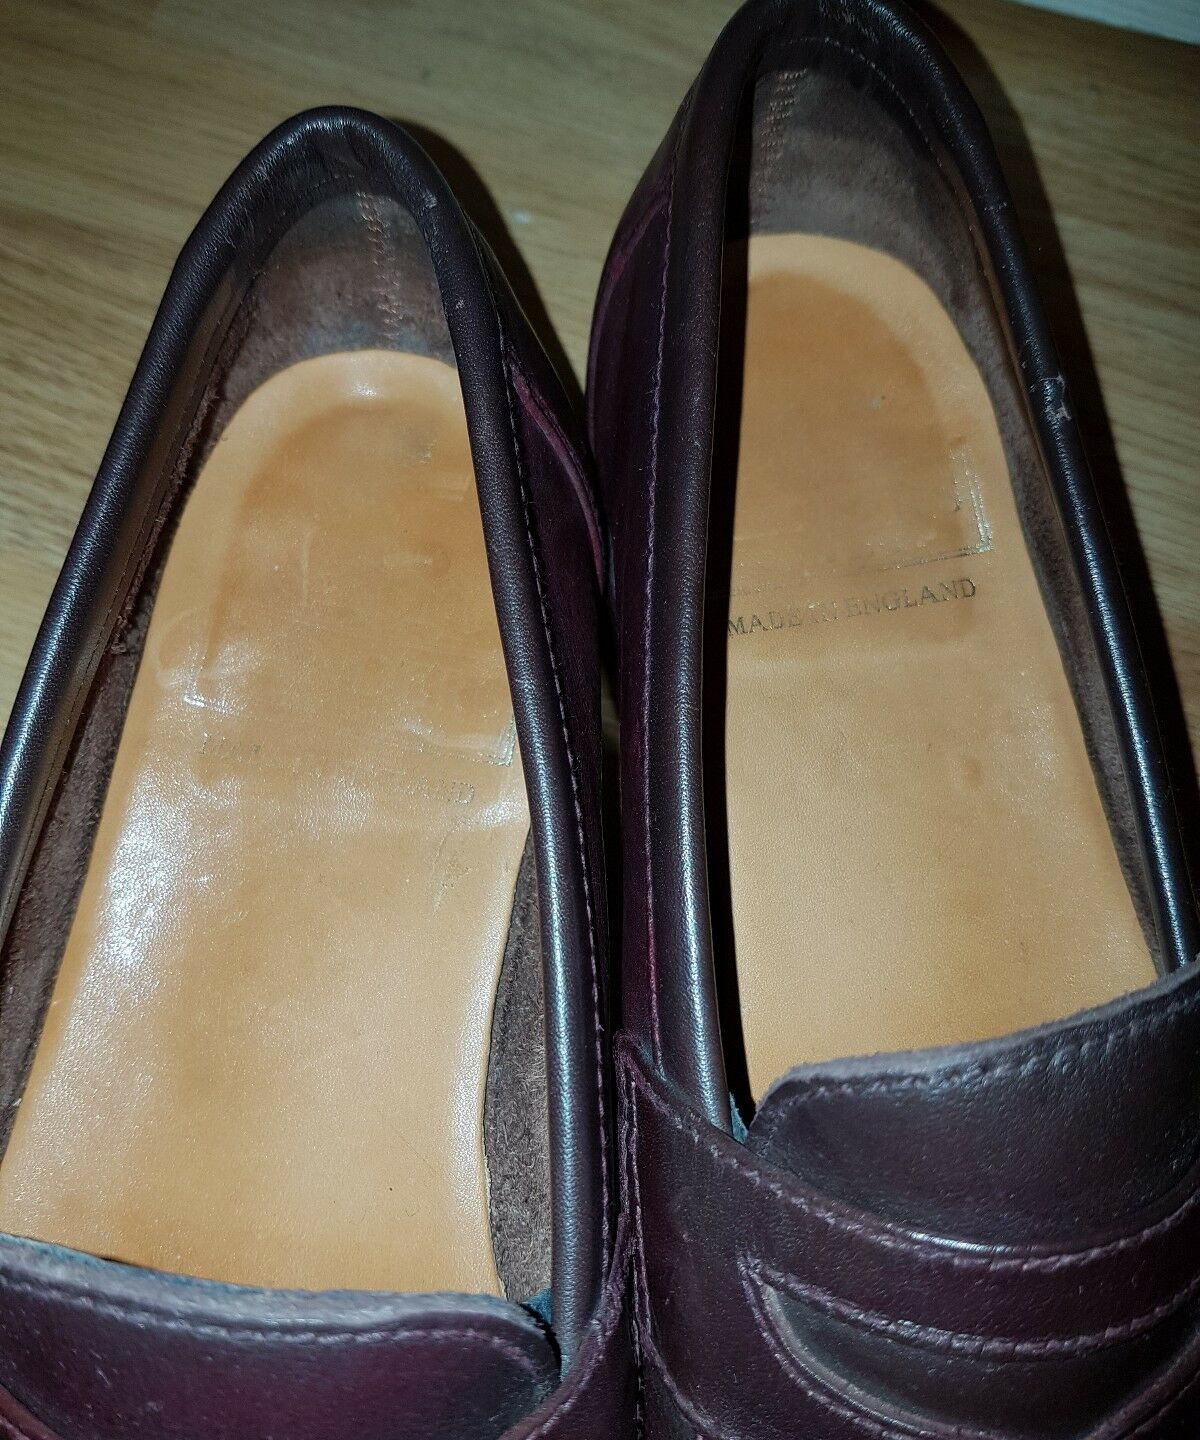 SANDRES MEN'S IN  LOAFERS  MADE IN MEN'S ENGLAND  SIZR 8 f6076f